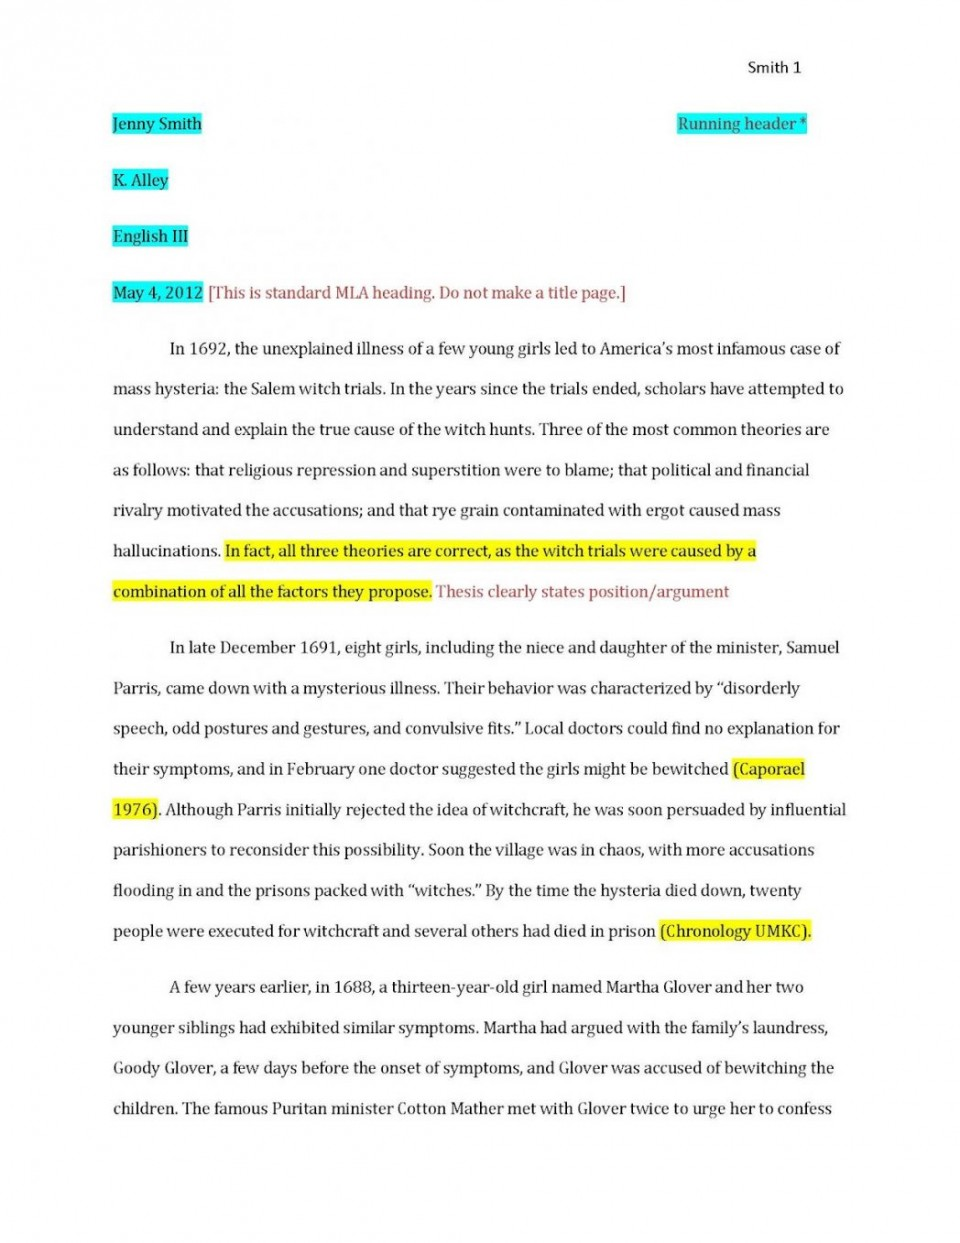 002 Mla Format Essay Generator Author Date References System Ready Set Automaticpaper P 1048x1357 Wondrous Funny Free Software Bot 960